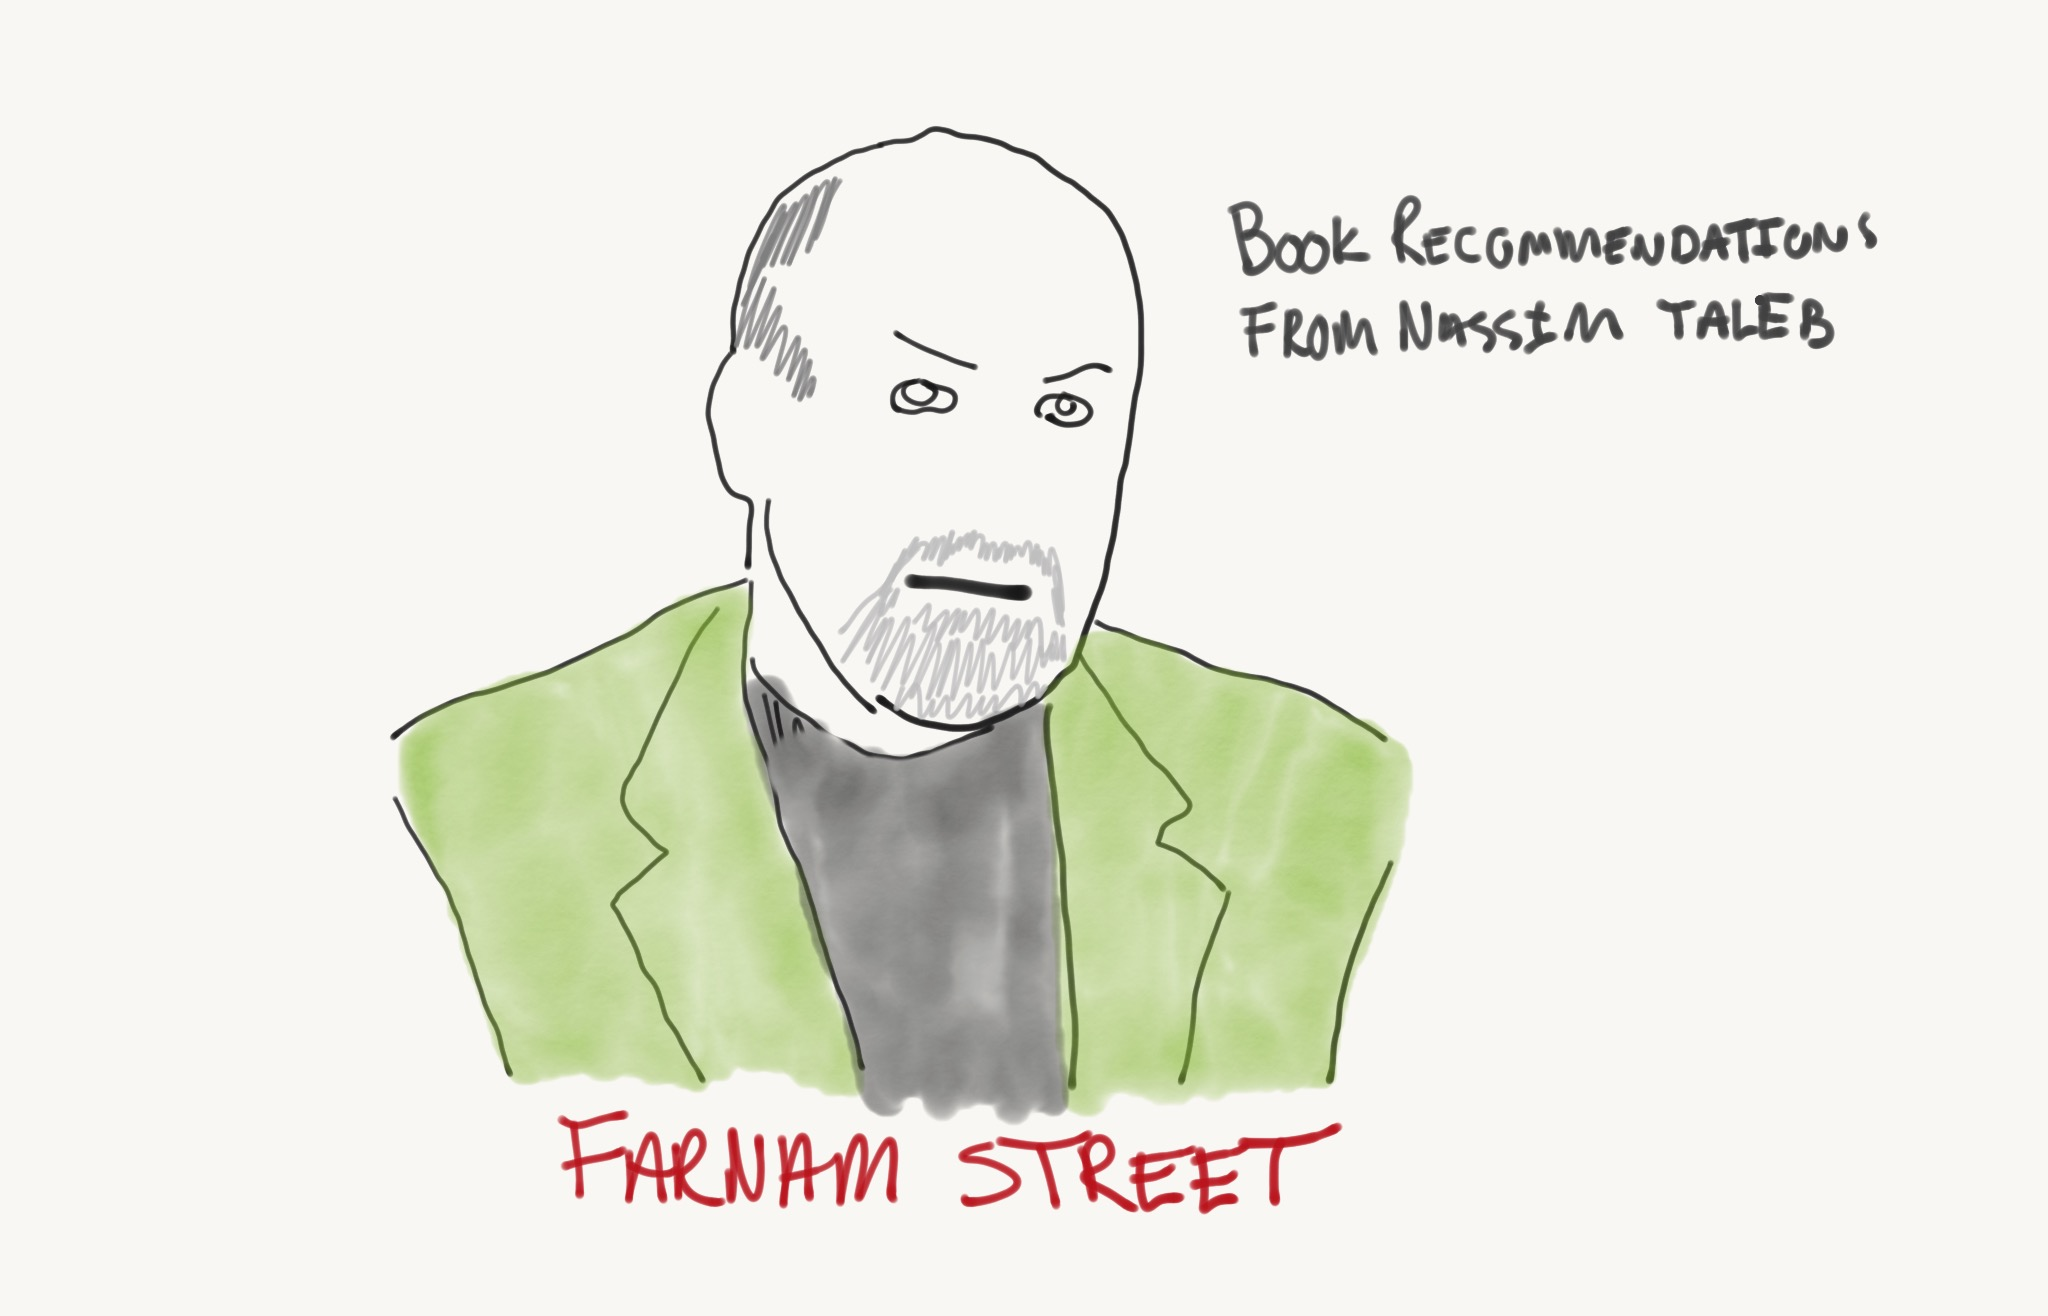 Nassim Taleb: Book Recommendations